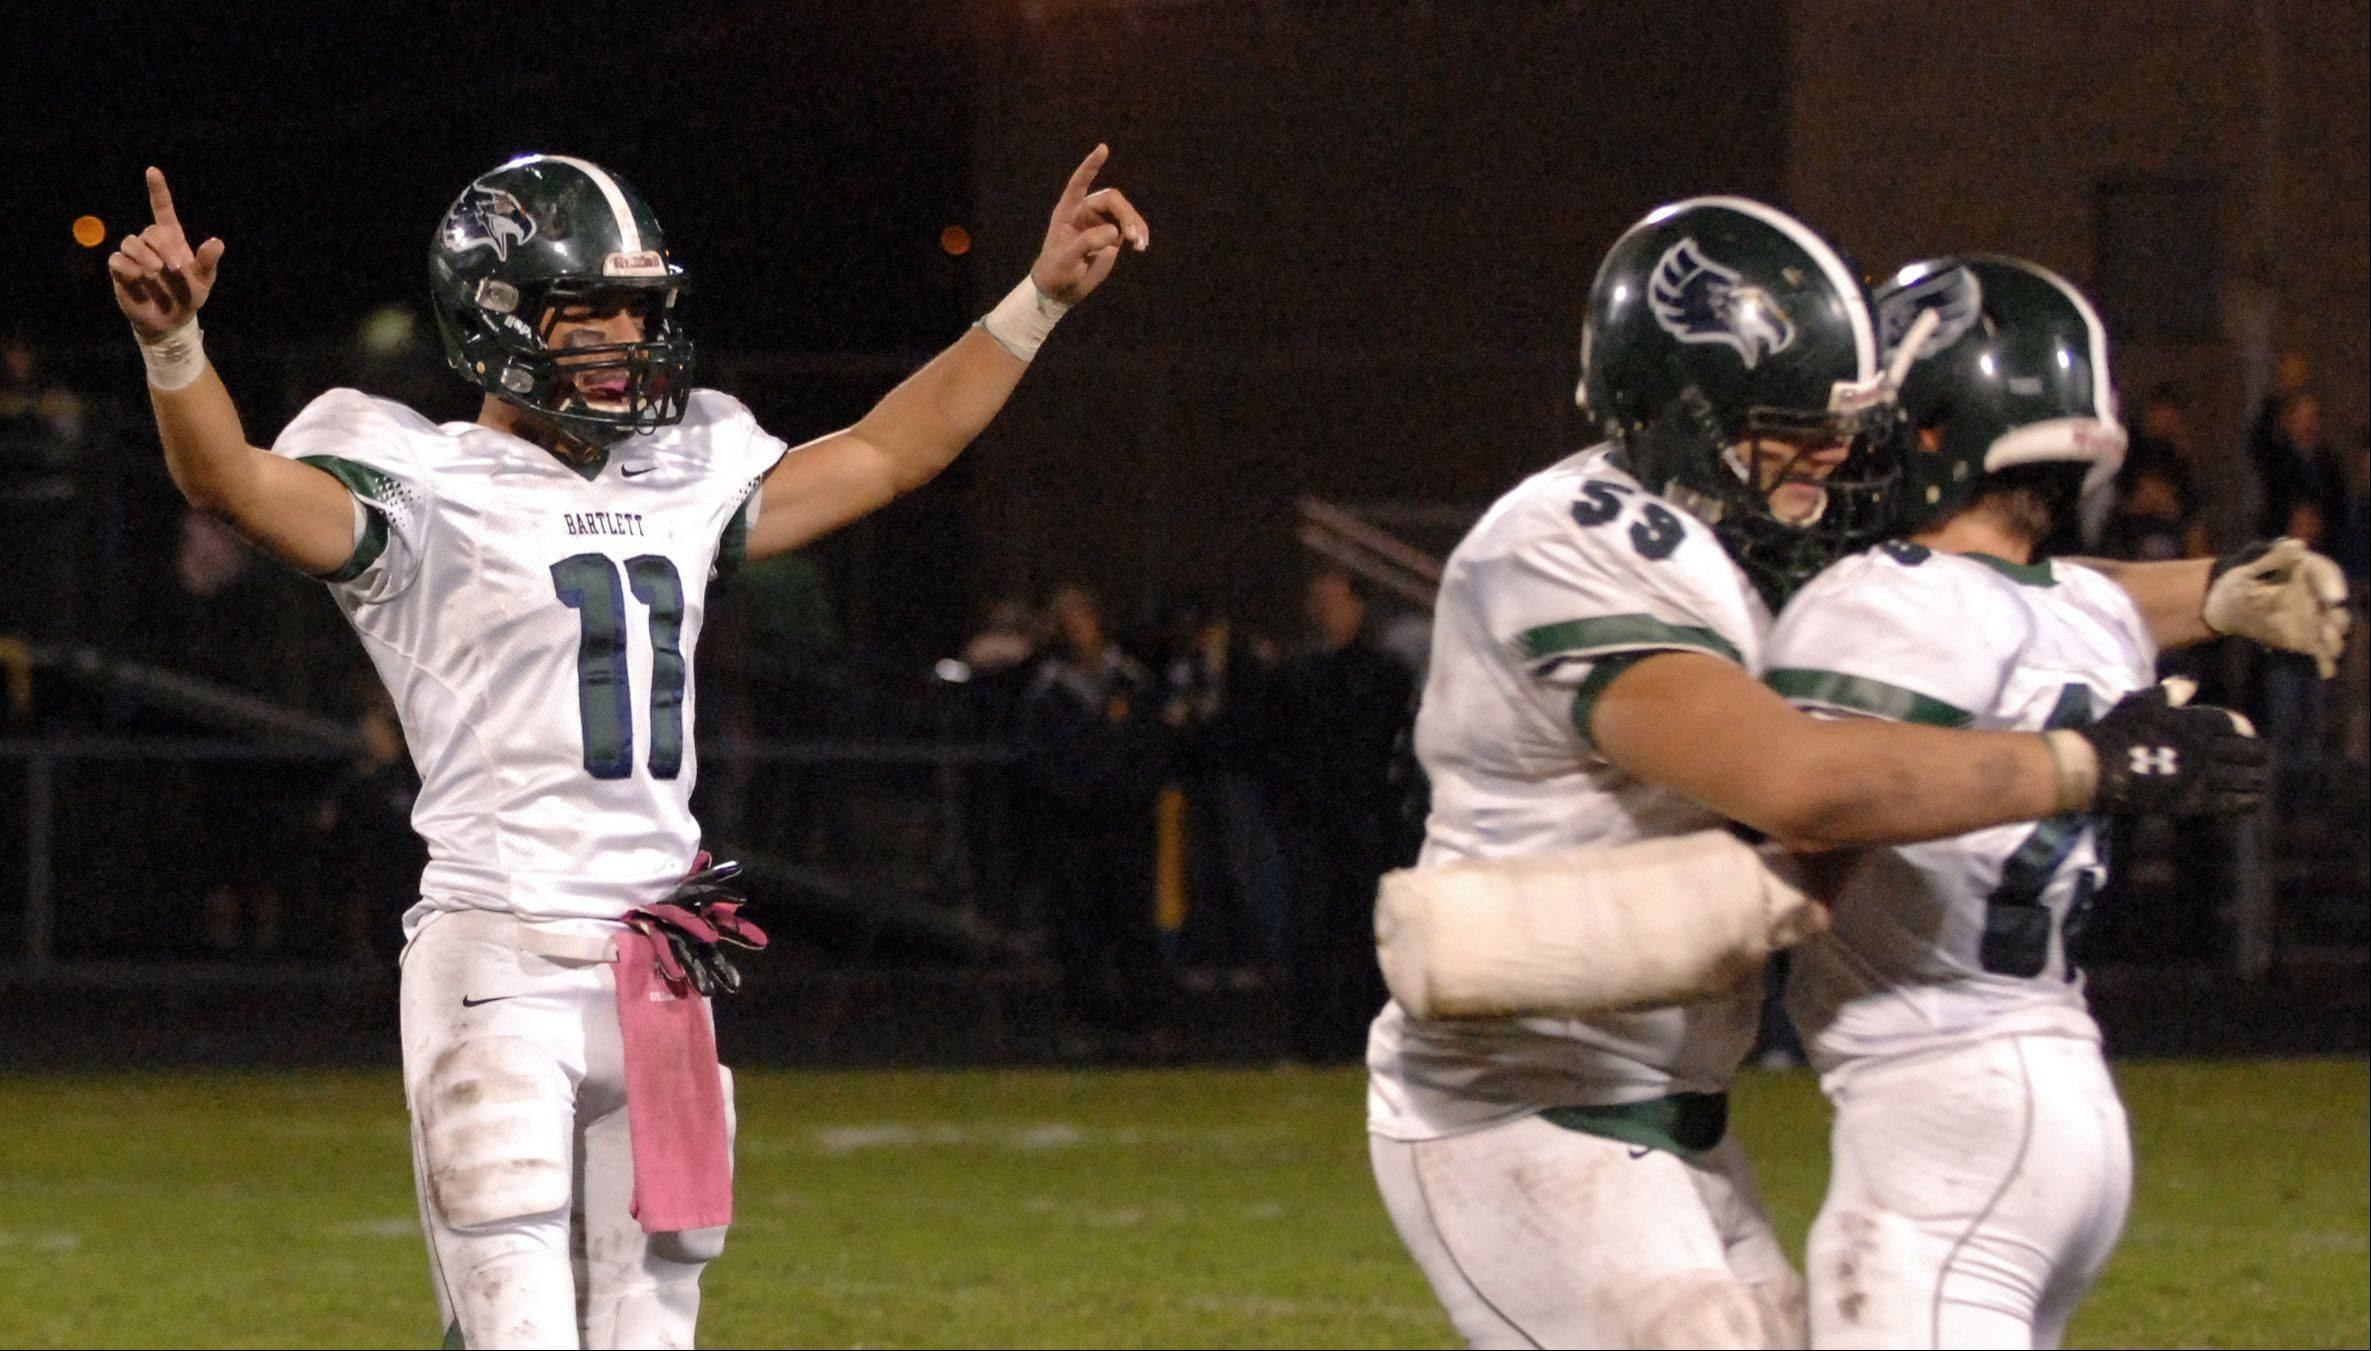 Bartlett's Kyle Garcia (11) and teammates celebrate after their first-round playoff win over Leyden in Northlake Friday.